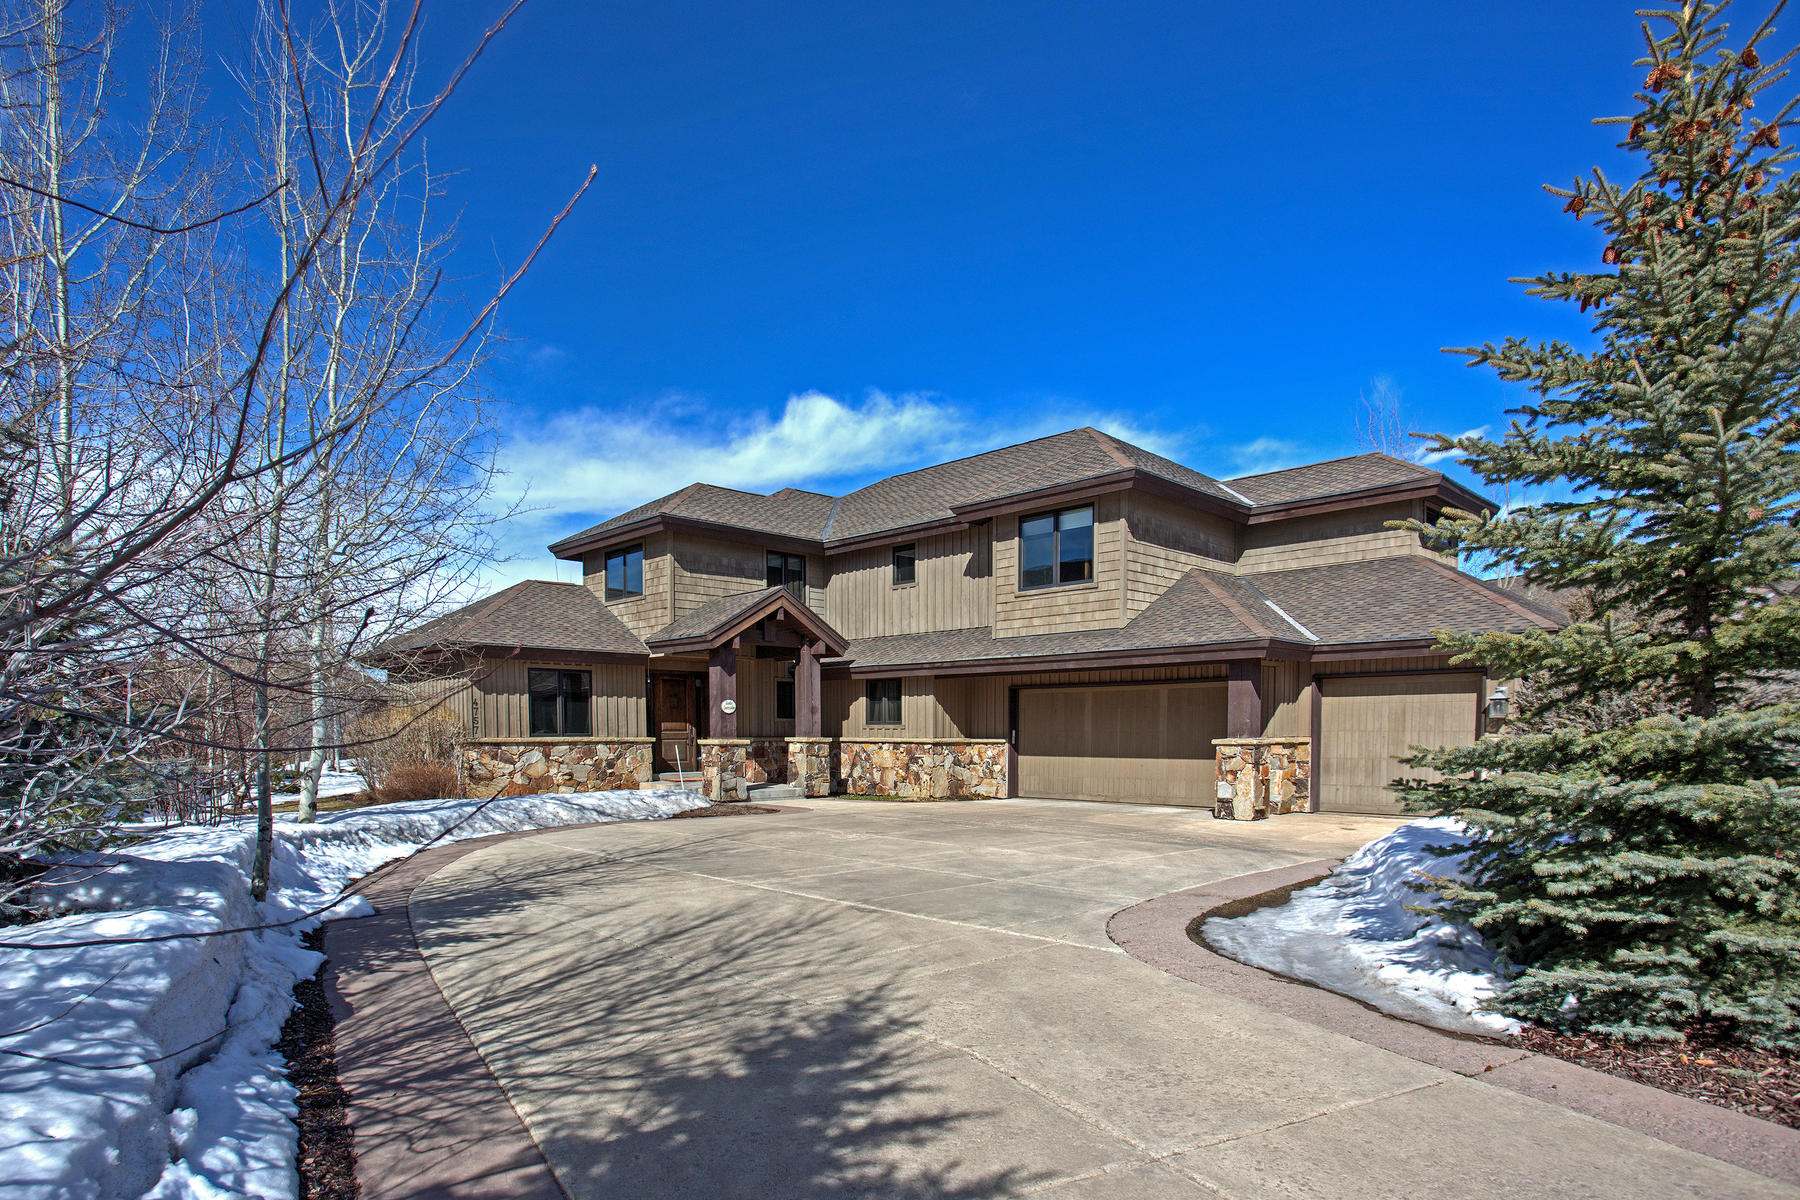 Villa per Vendita alle ore Beautiful Willow Creek Home 4757 Pace Dr Park City, Utah, 84098 Stati Uniti